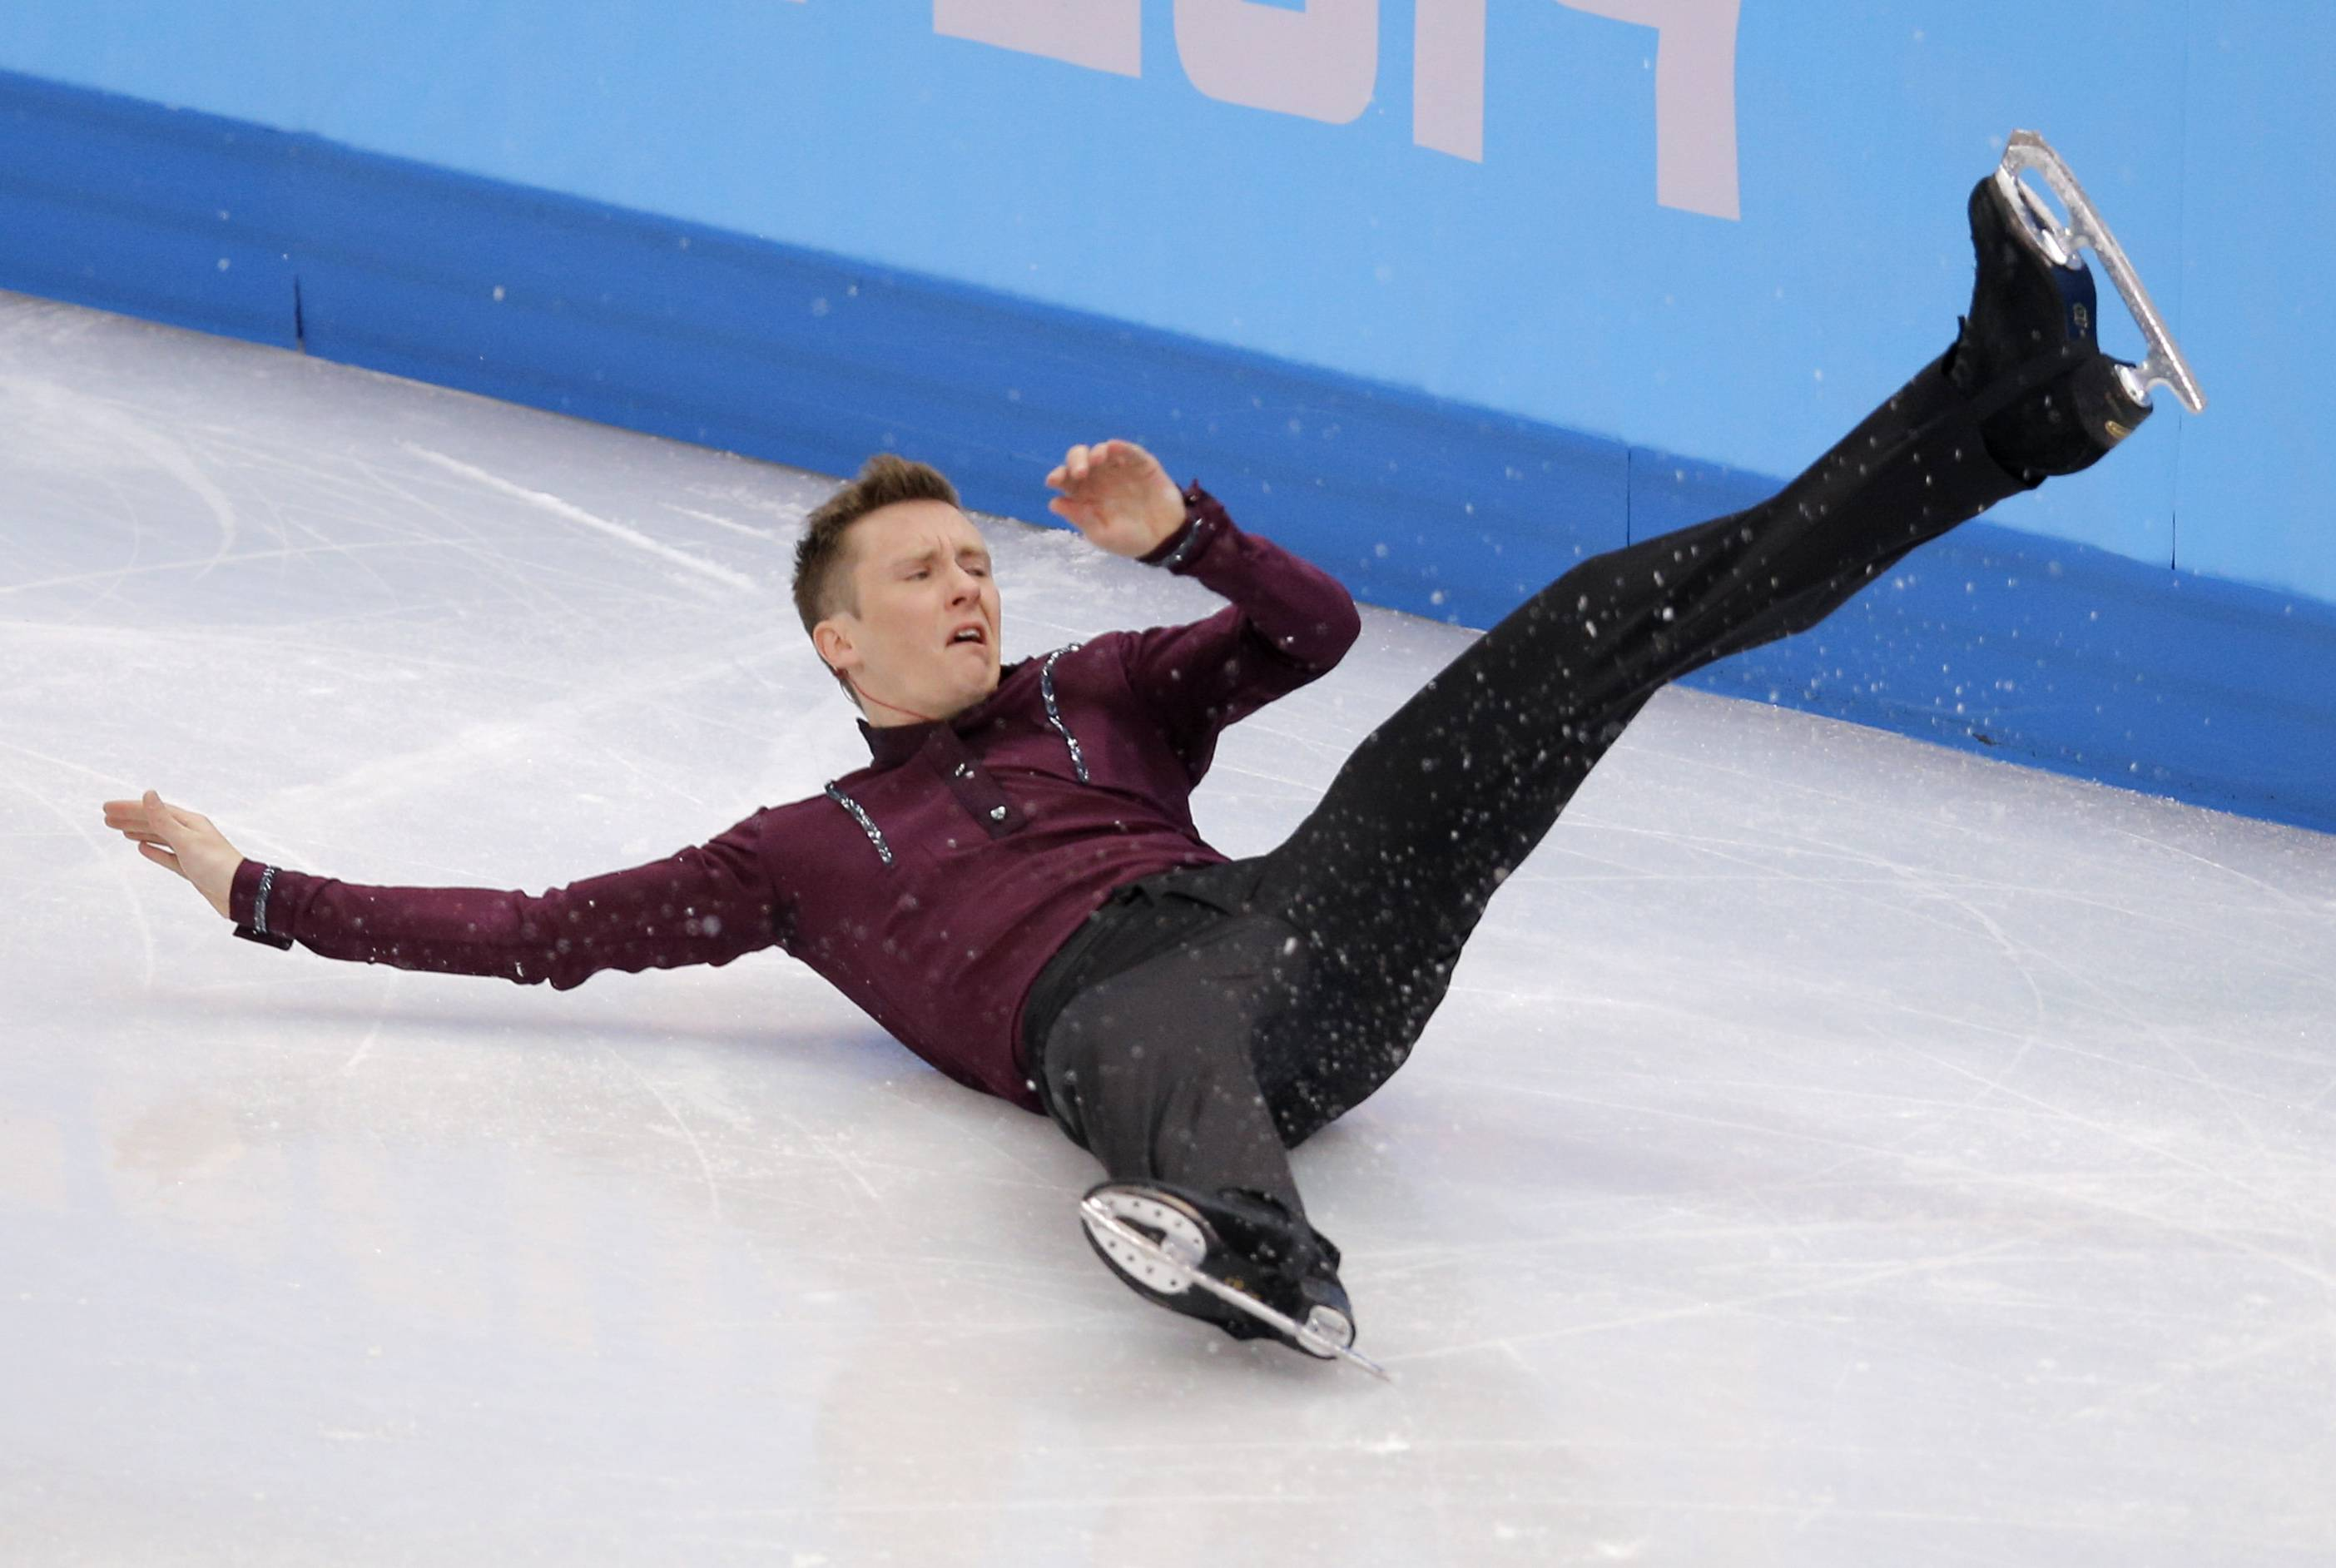 Jeremy Abbott of the United States crashed to the ice on his first jump and slid into the padded end boards, staying down for an extended period,